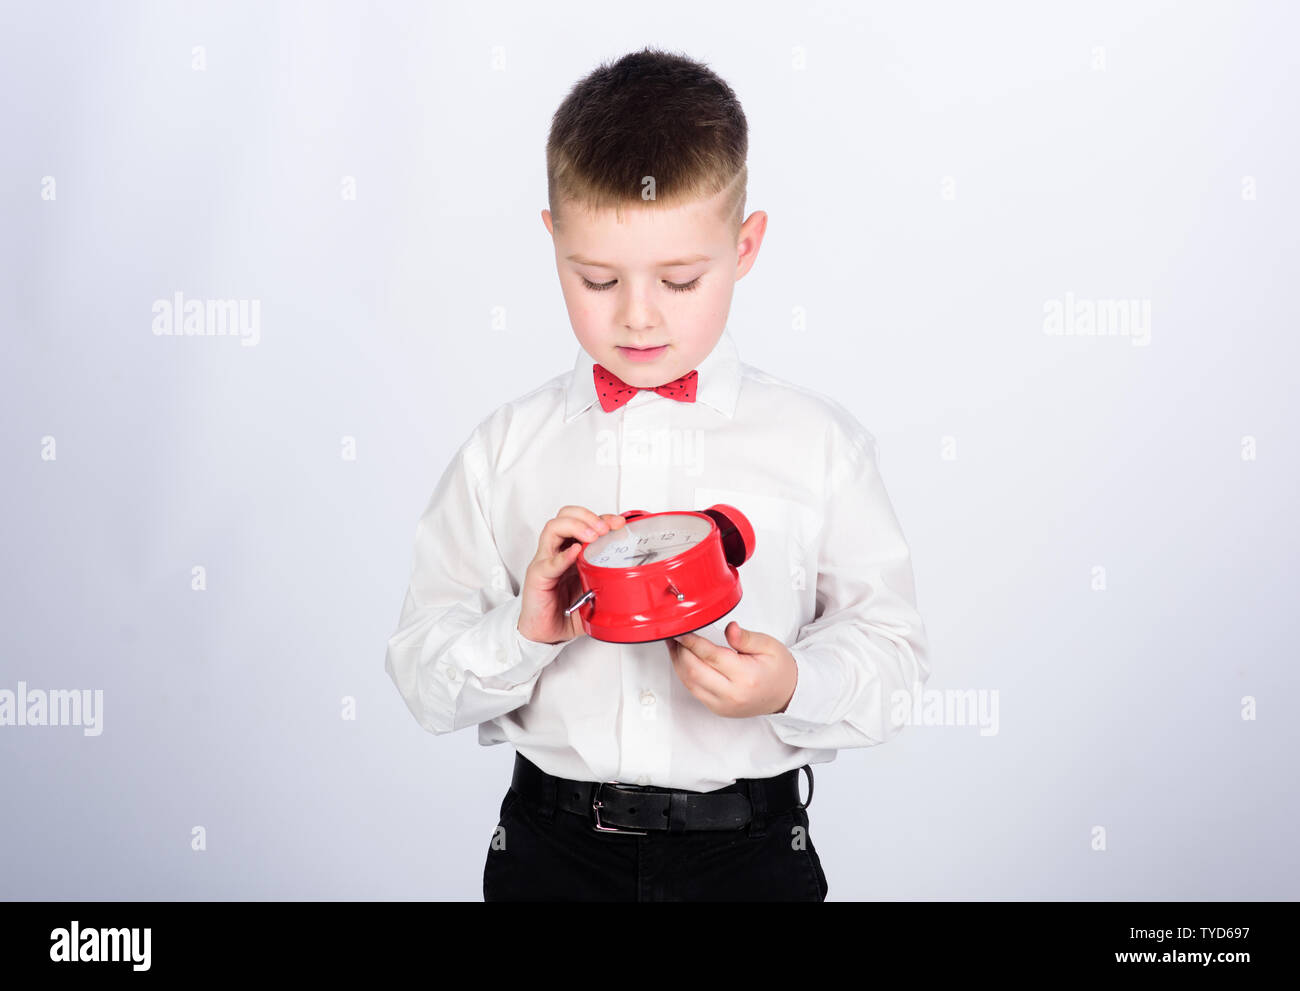 Party time. Businessman. Formal wear. happy child with retro clock in bow tie. little boy with alarm clock. Time to relax. Time management. Morning. tuxedo kid. Happy childhood. fun time. - Stock Image